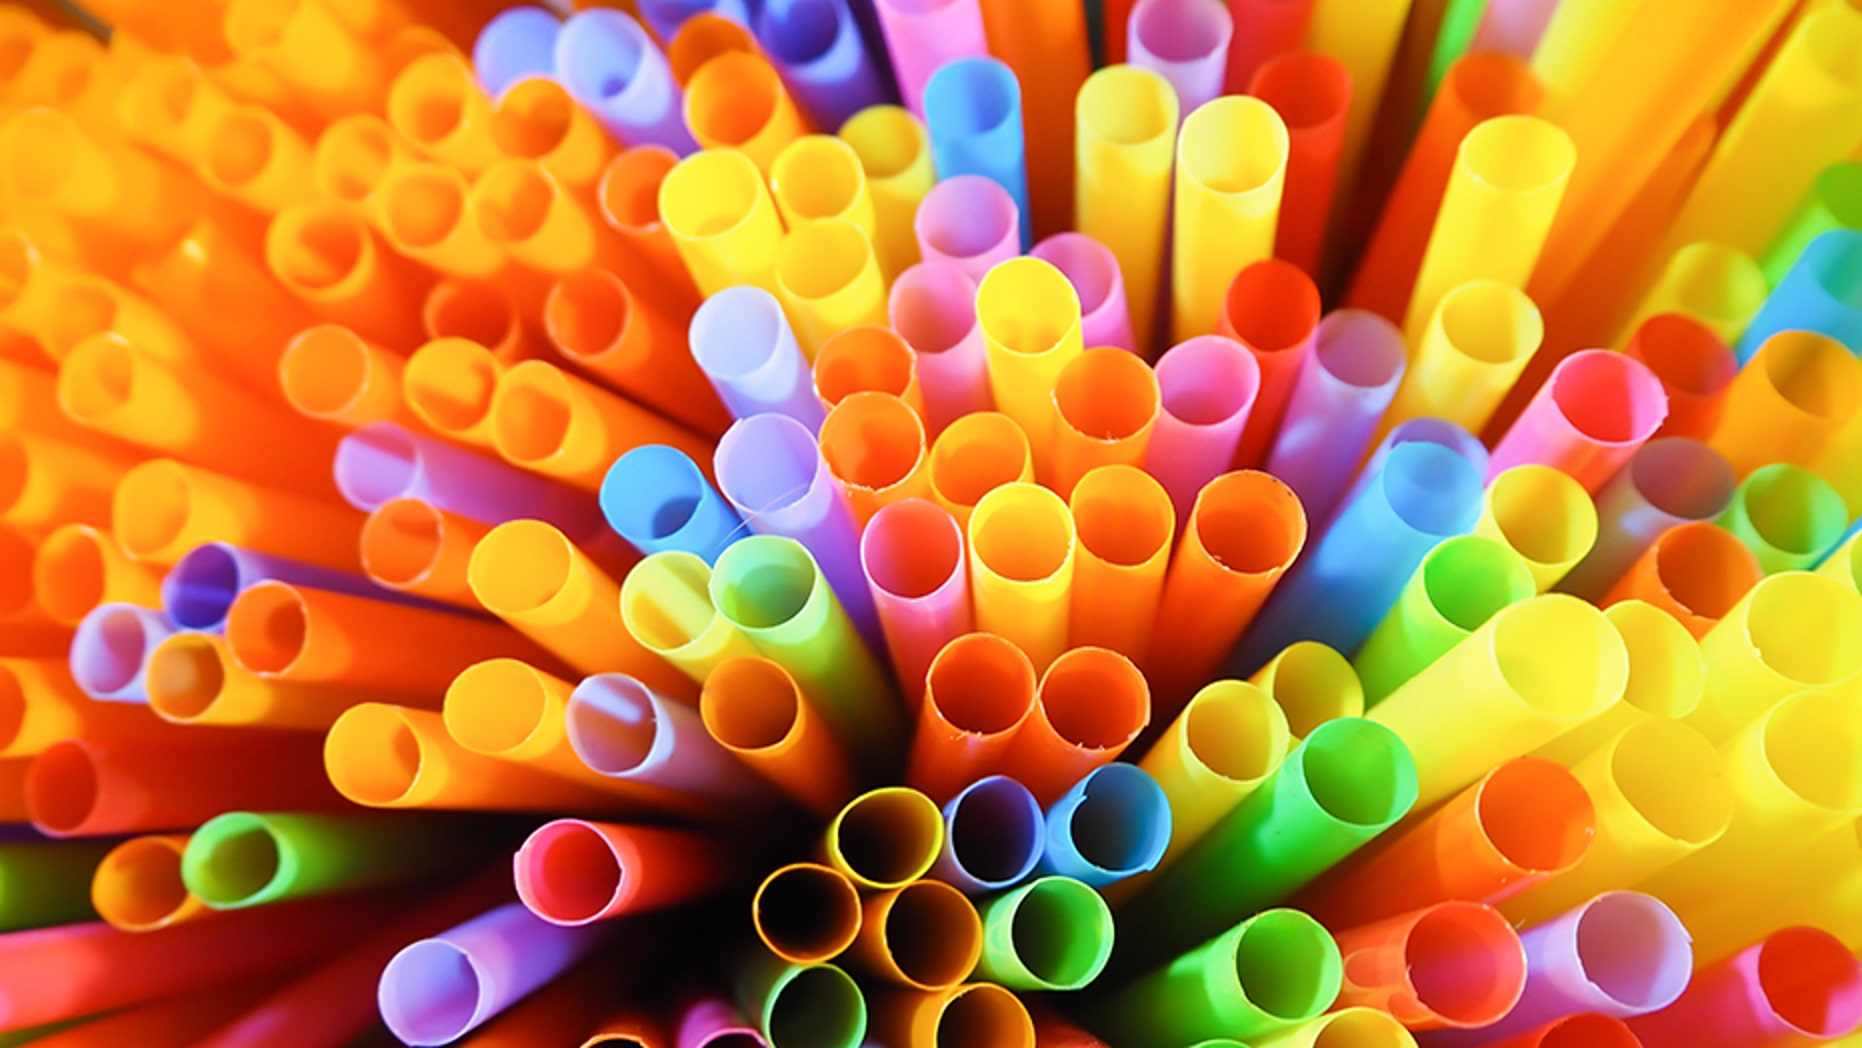 NBC News reported a dubious statistic that Americans use 1.6 straws a day.